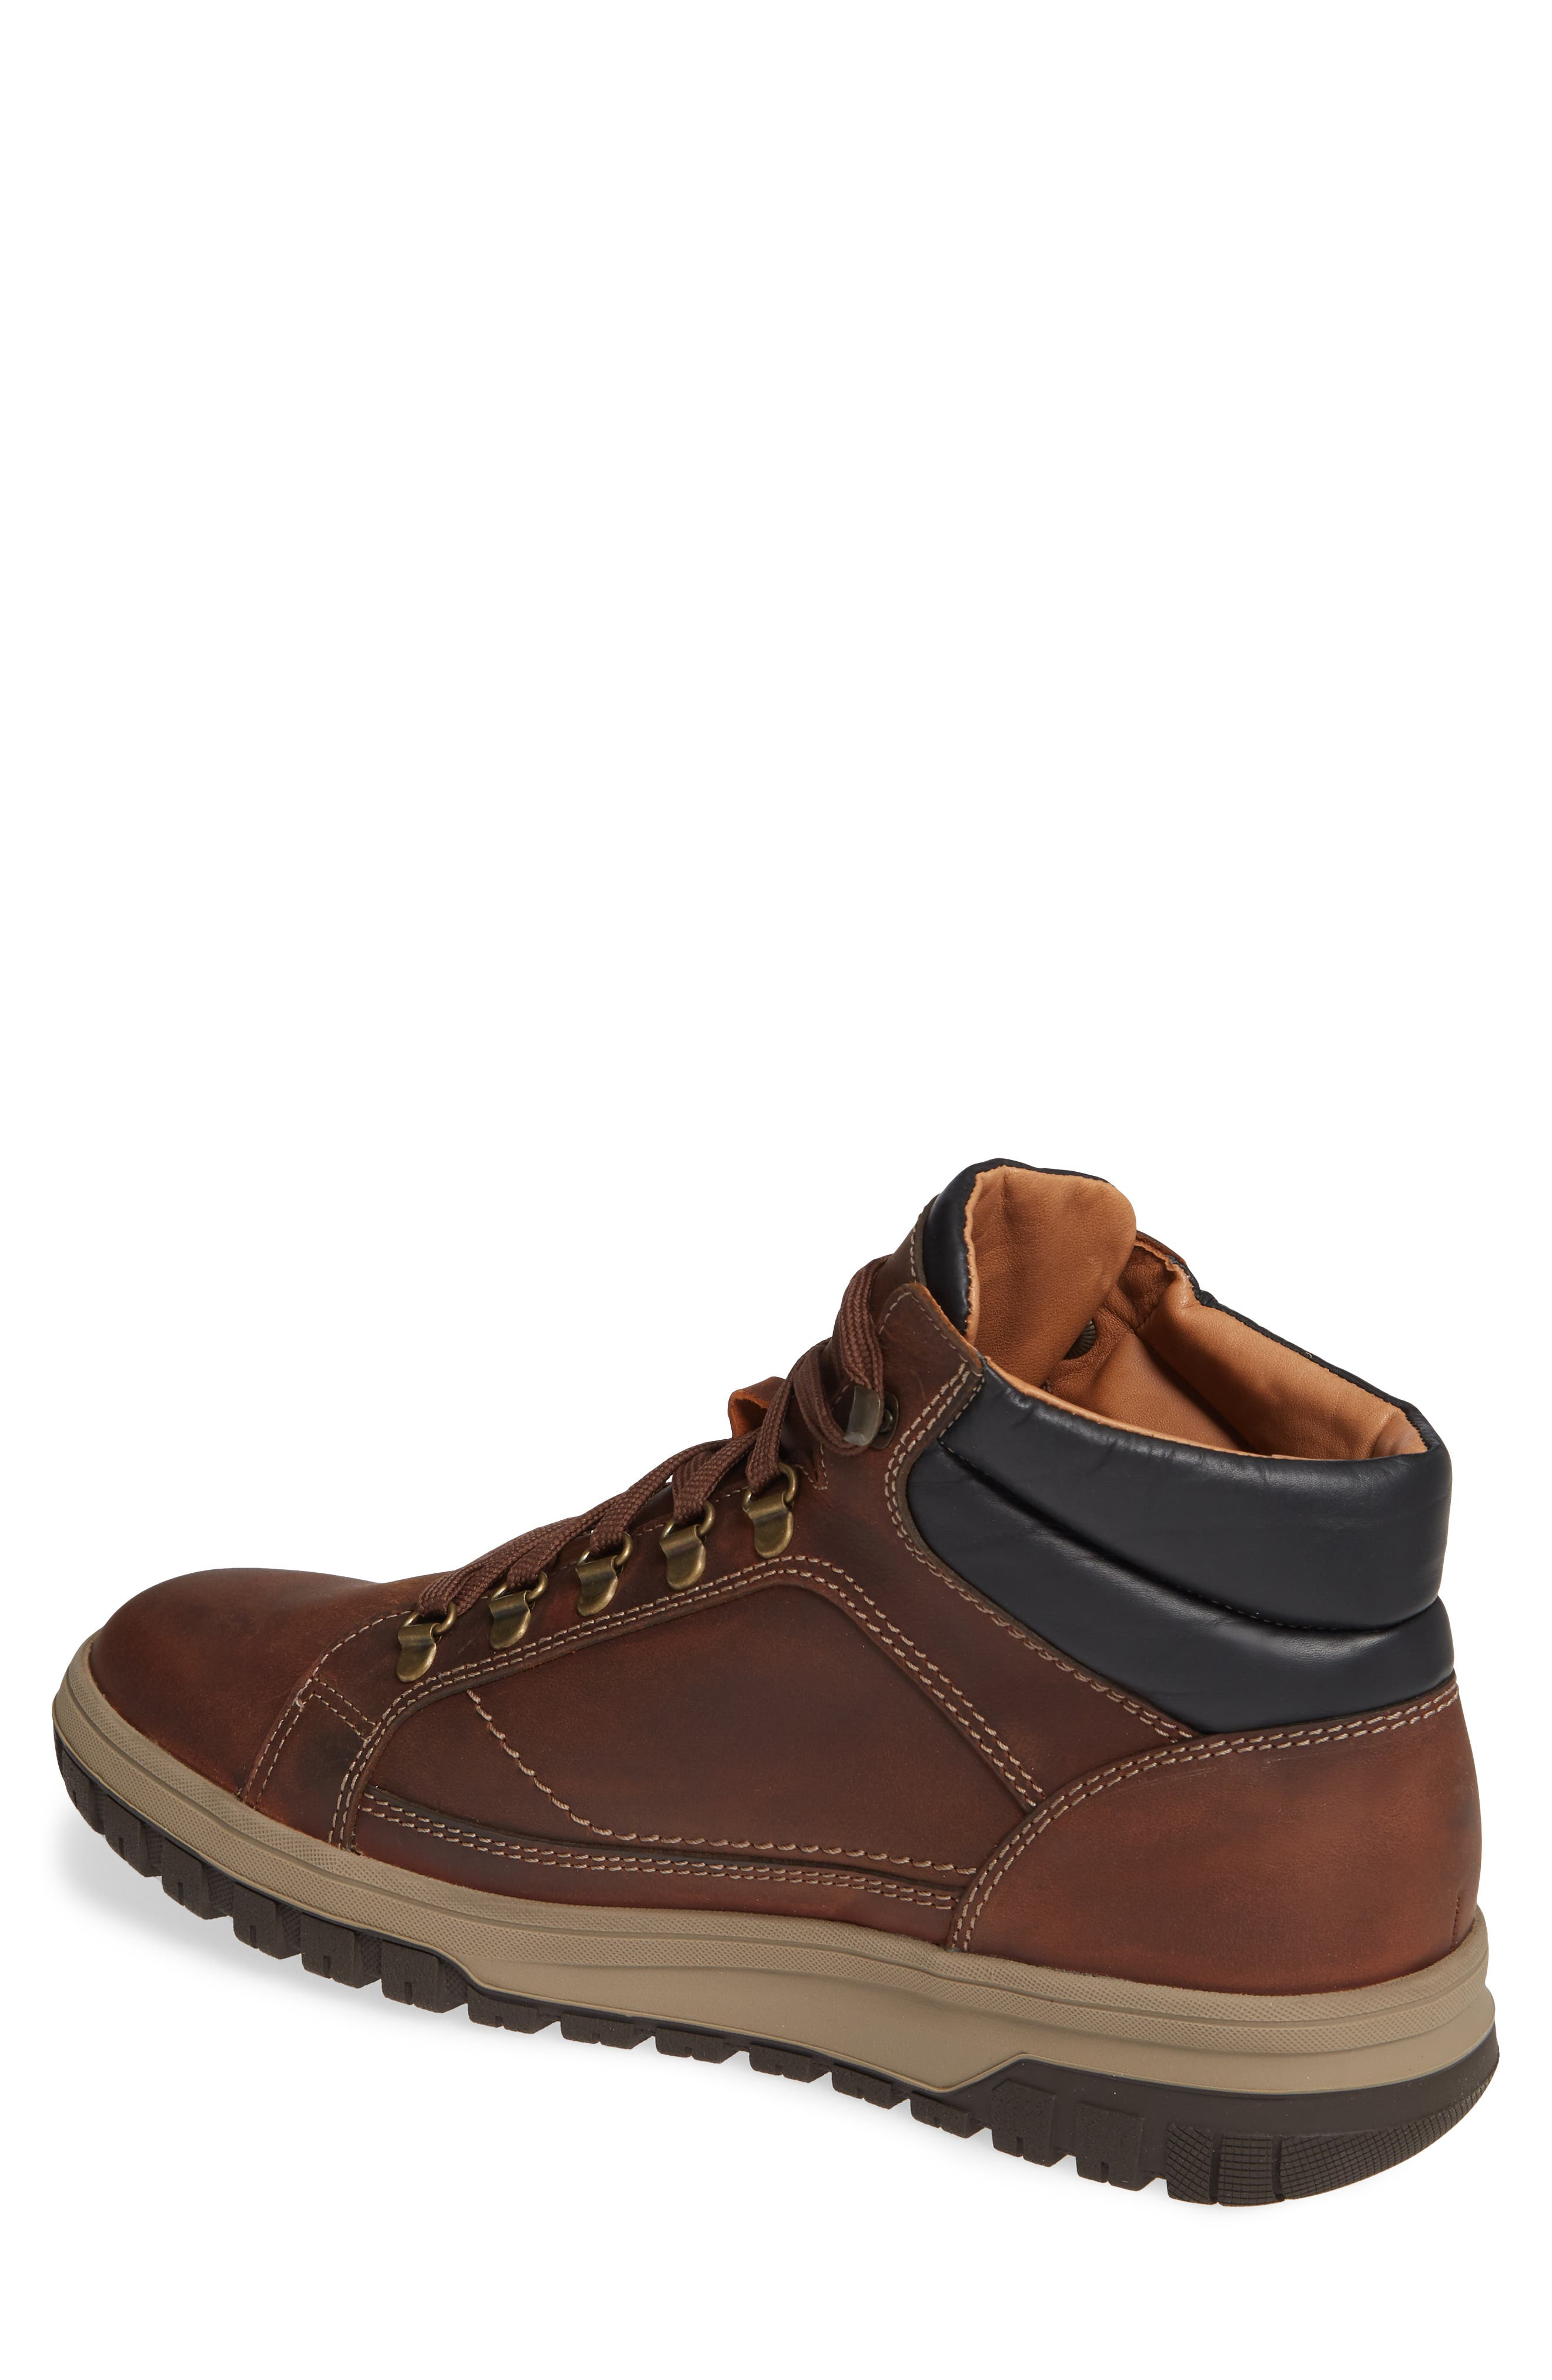 MEPHISTO, Pitt Mid Lace-Up Boot, Alternate thumbnail 2, color, 213